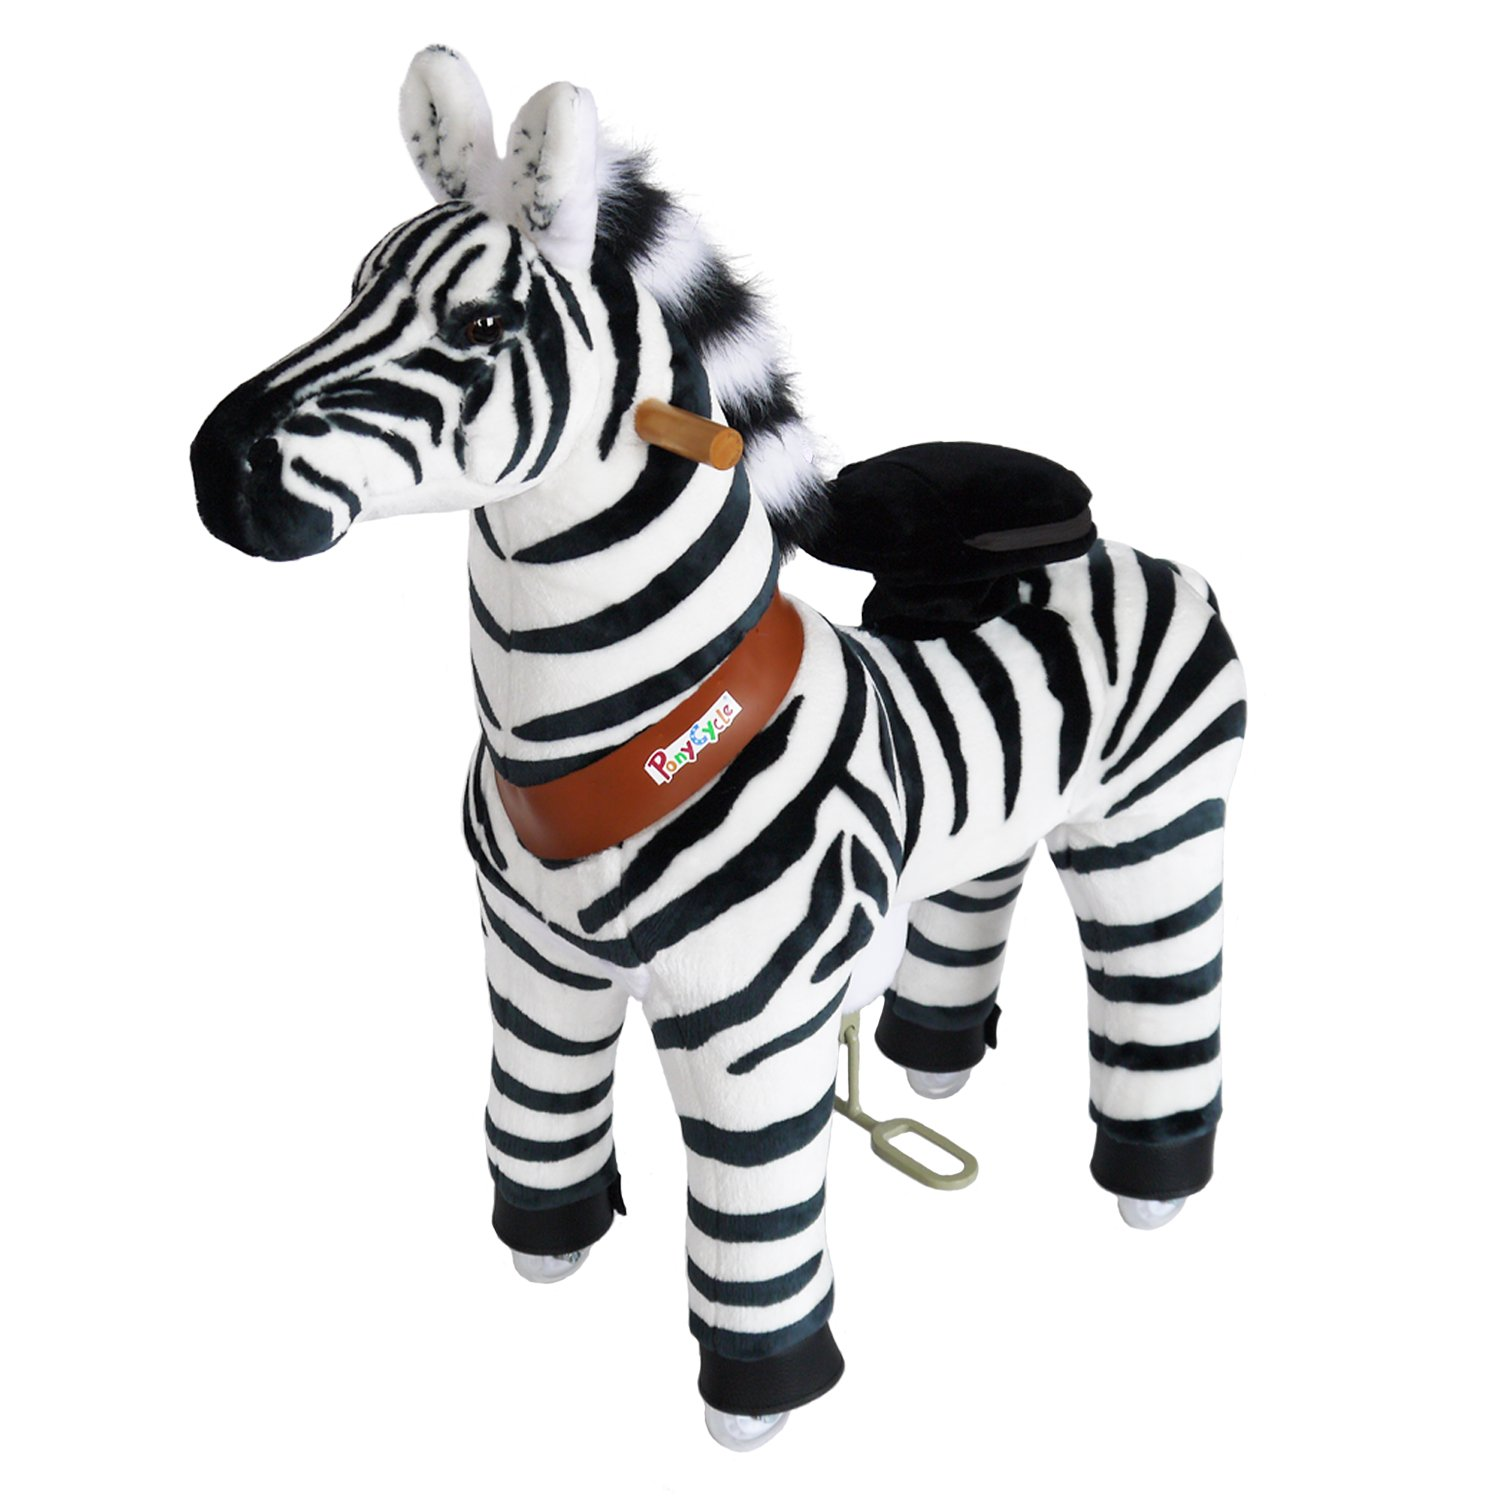 PonyCycle Official Riding Horse Zebra Black and White Giddy up Pony Plush Toy Walking Animal for Age 4-9 Years Medium Size - N4012 by PonyCycle (Image #1)